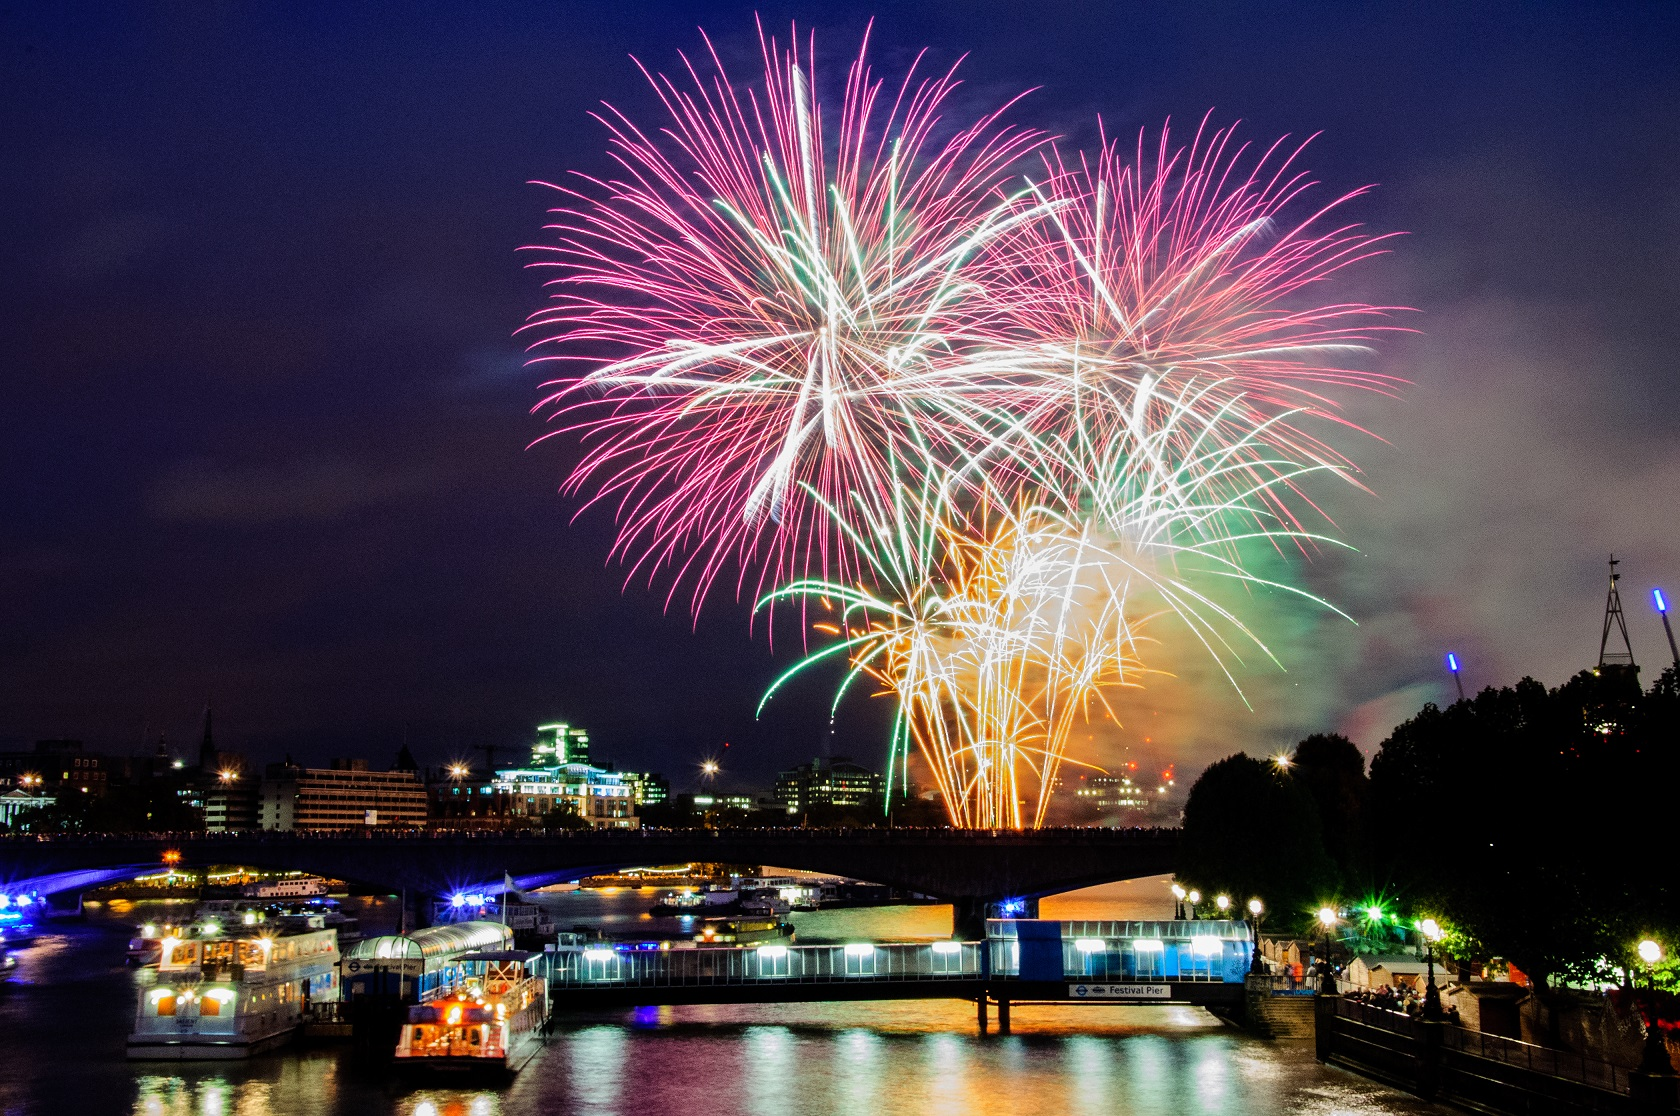 Firework display over the river Thames, with bridges and London skyline in the background